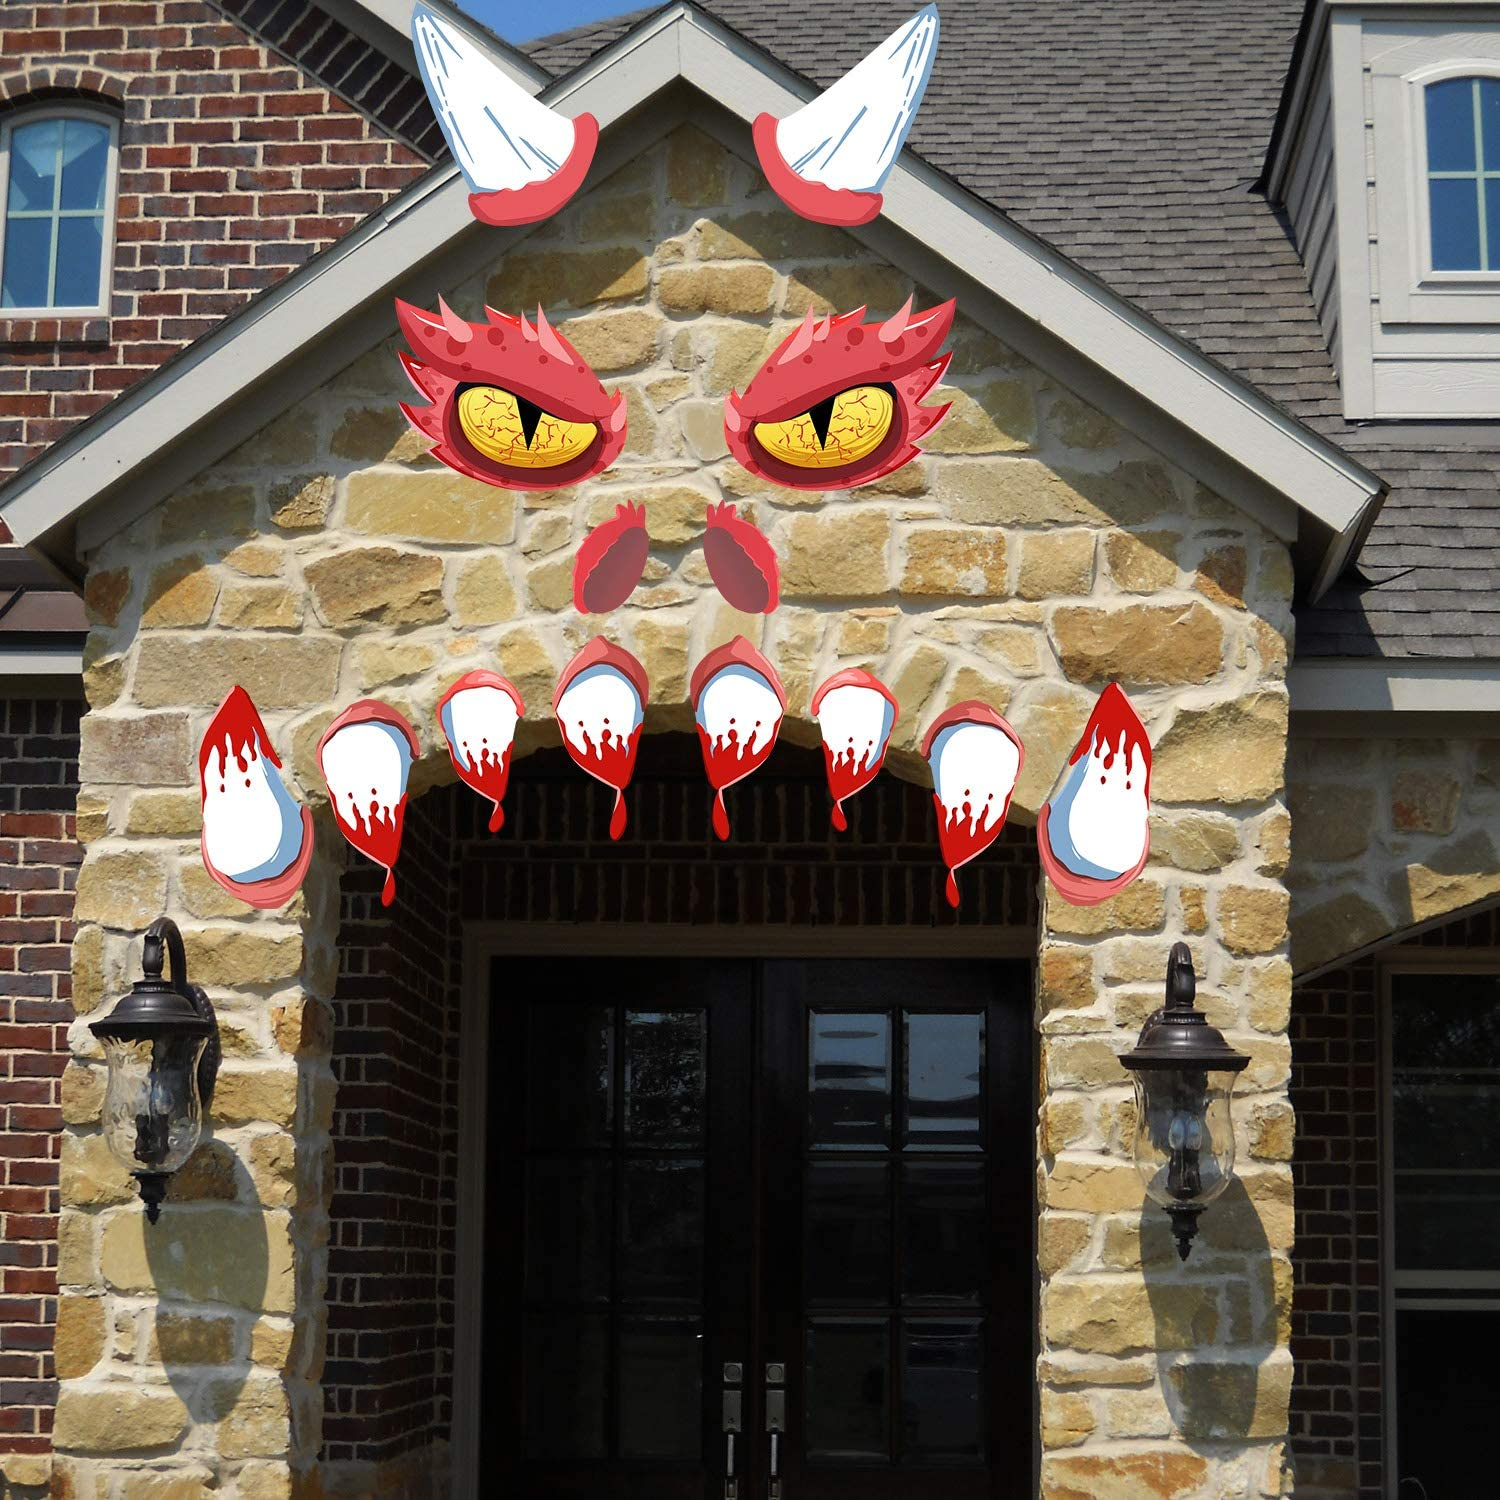 PartyShow Halloween Decorations Garage Door Archway Car Monster Face with Eyes Nostrils & Teeth Included Double Sided Adhesive Tapes